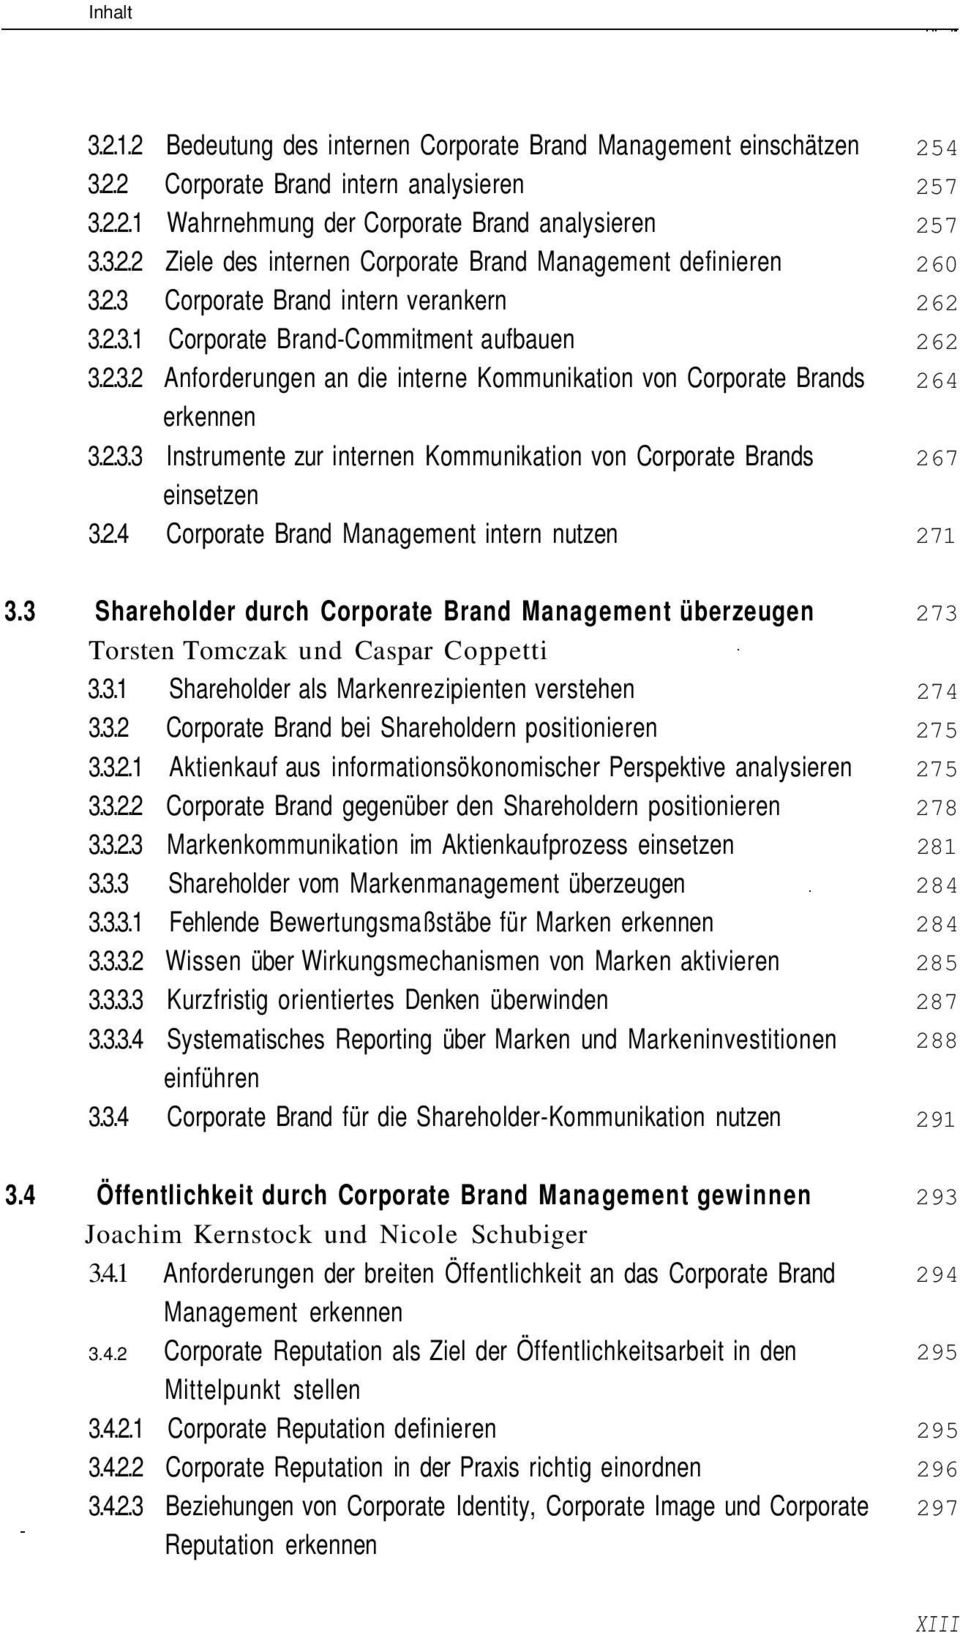 2.4 Corporate Brand Management intern nutzen 254 257 257 260 262 262 264 267 271 3.3 Shareholder durch Corporate Brand Management überzeugen Torsten Tomczak und Caspar Coppetti 3.3.1 Shareholder als Markenrezipienten verstehen 3.